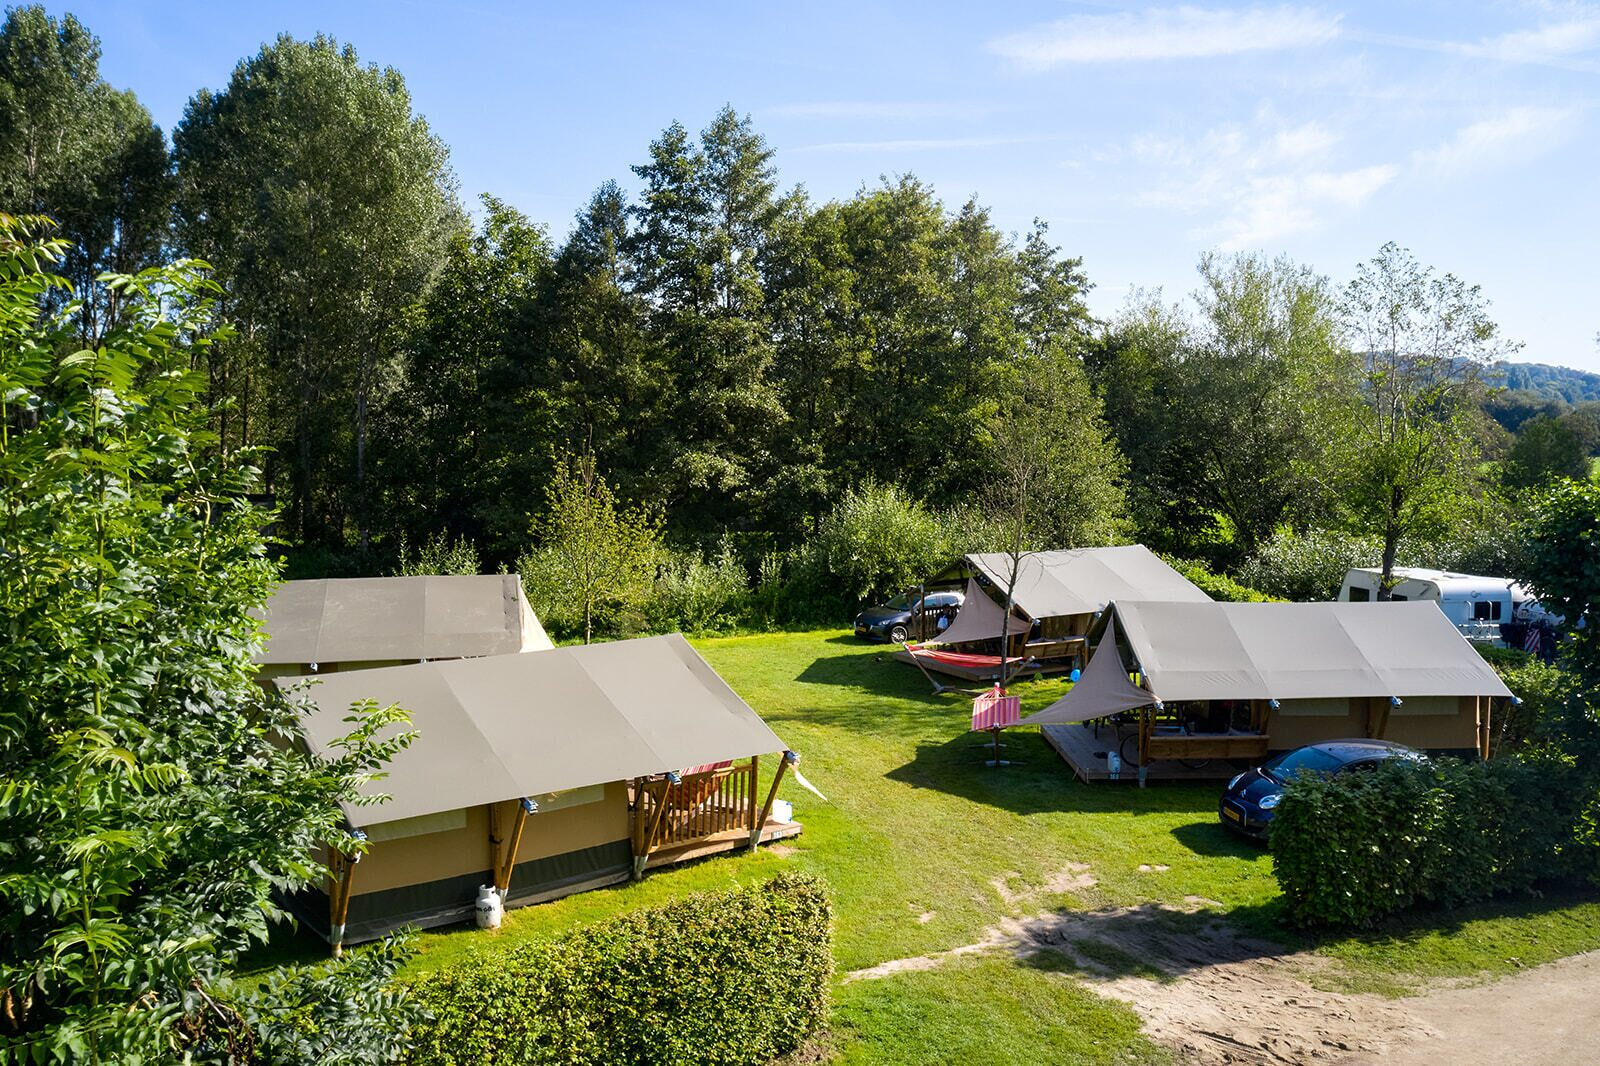 Camping 't Geuldal | Villatent Compact | 4 pers.